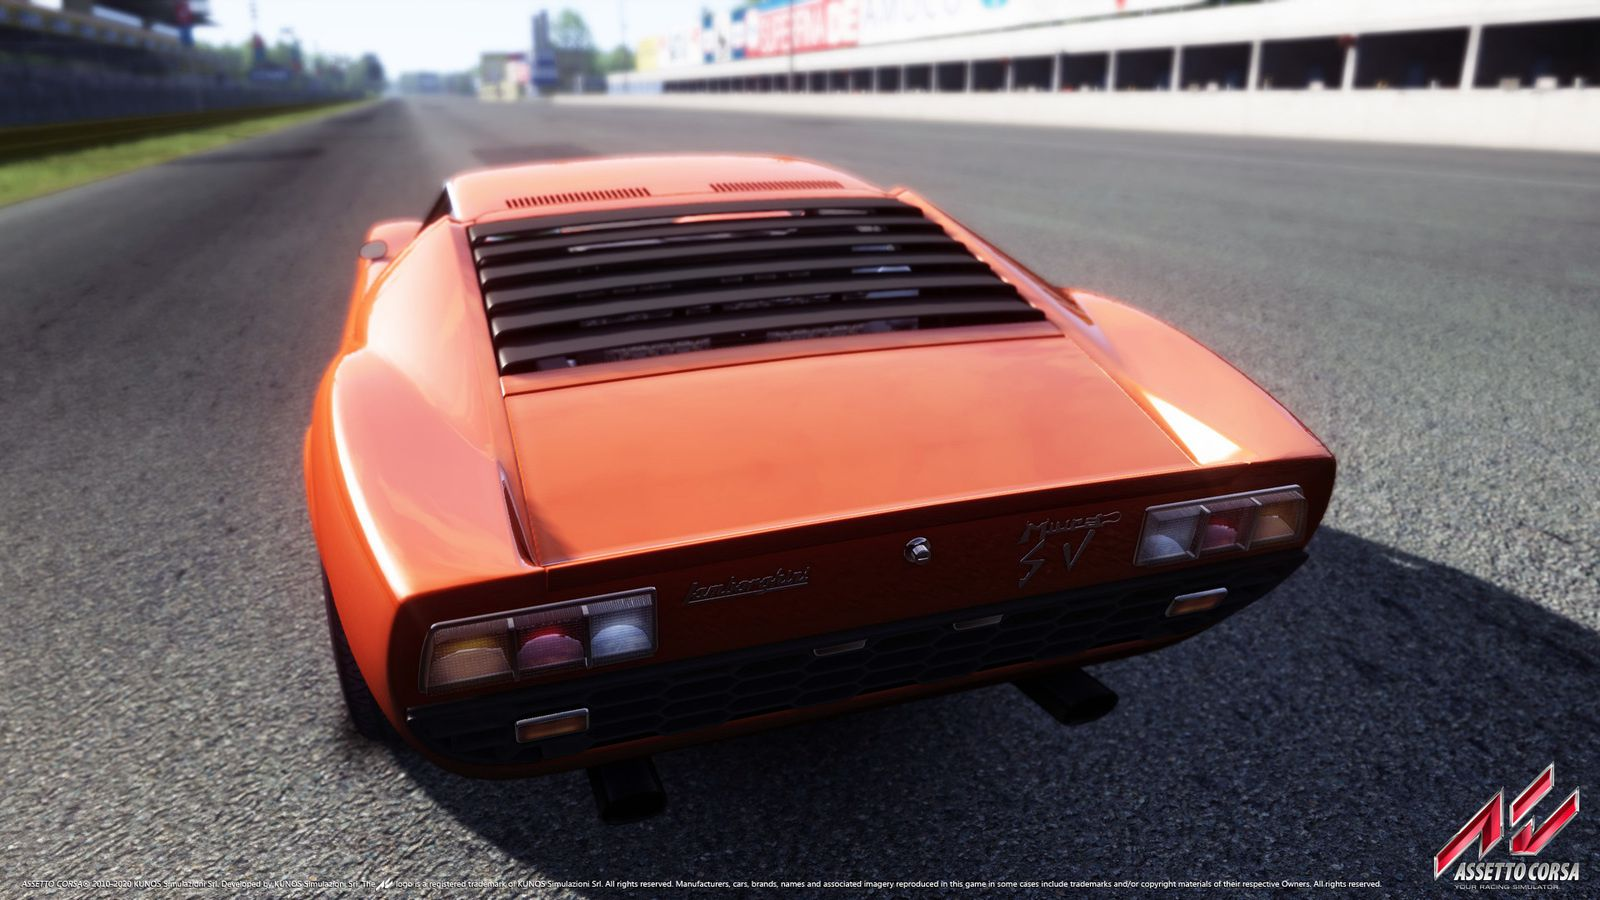 Assetto Corsa : révélation du Pack Bonus - The Racing Line